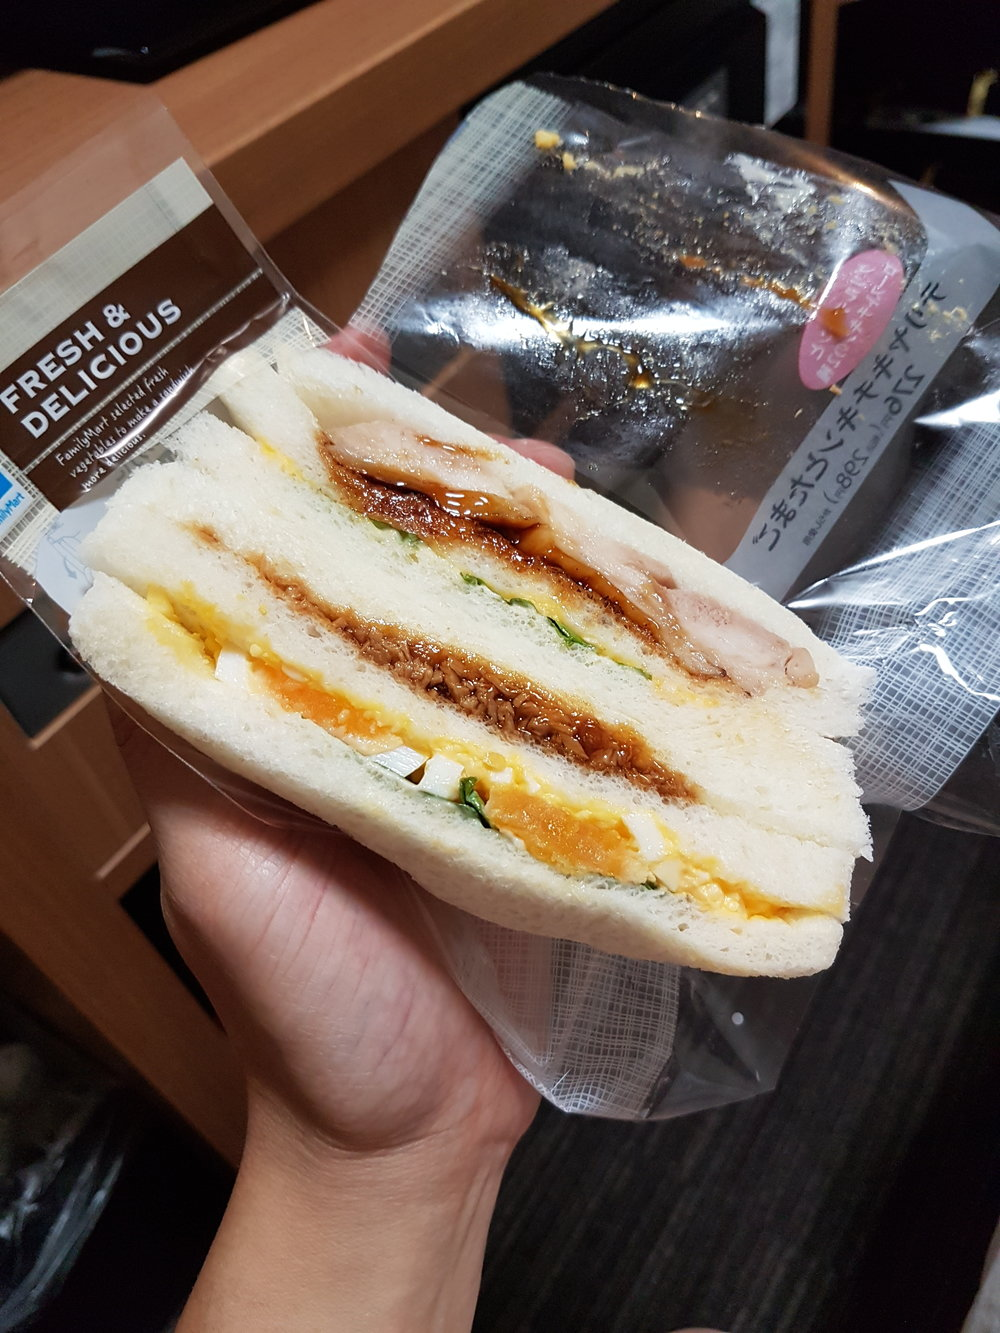 Family Mart's sandwiches... egg salad + chicken teriyaki and ground pork!